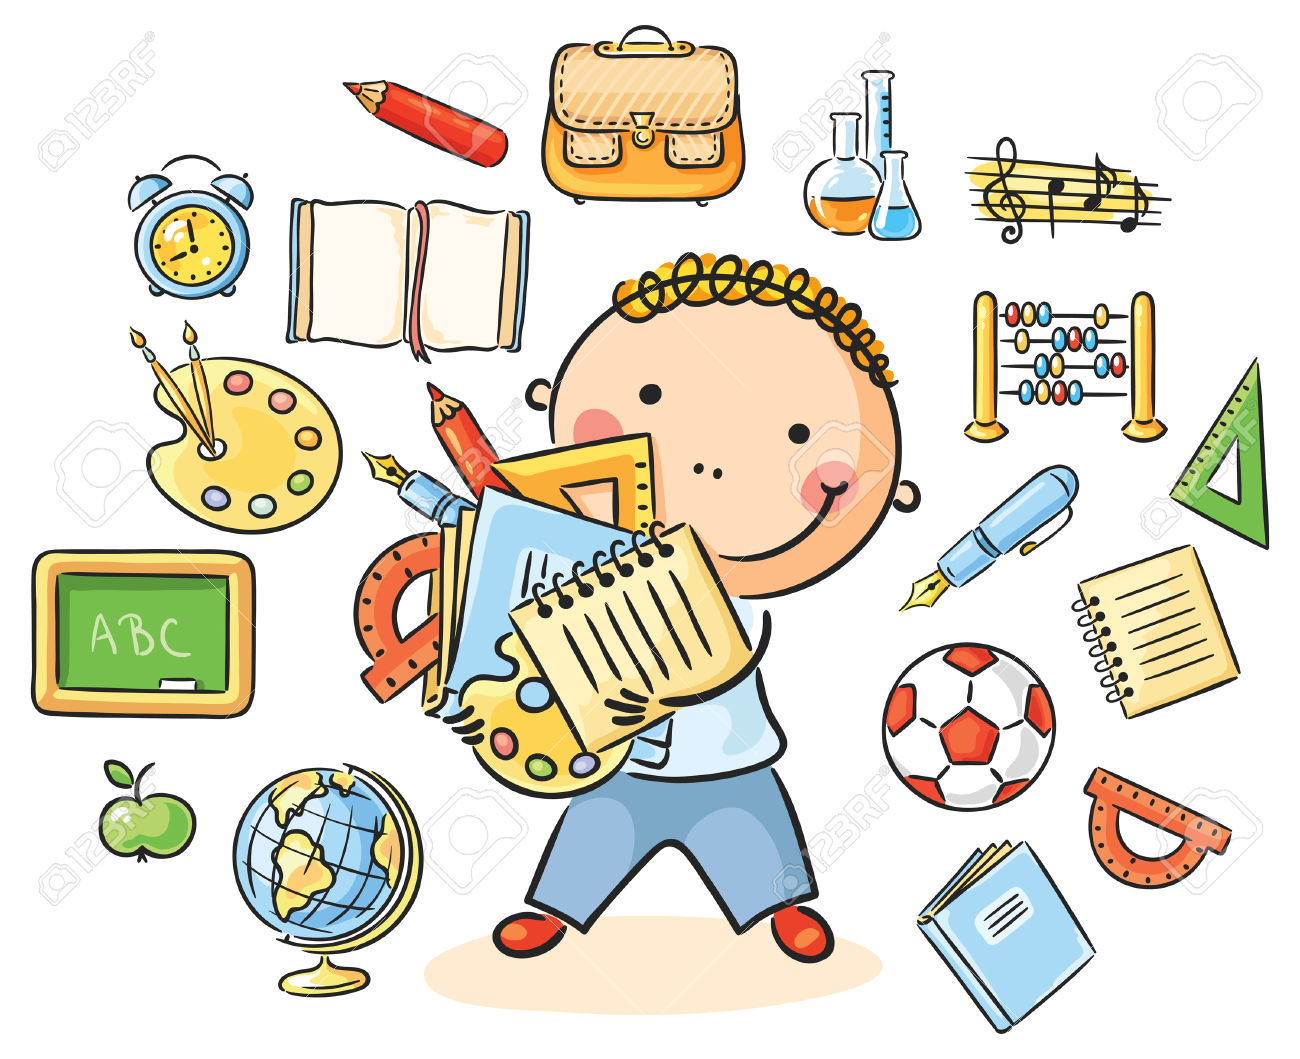 35233091 Cartoon schoolboy with lots of school things representing different school subjects Stock Vector